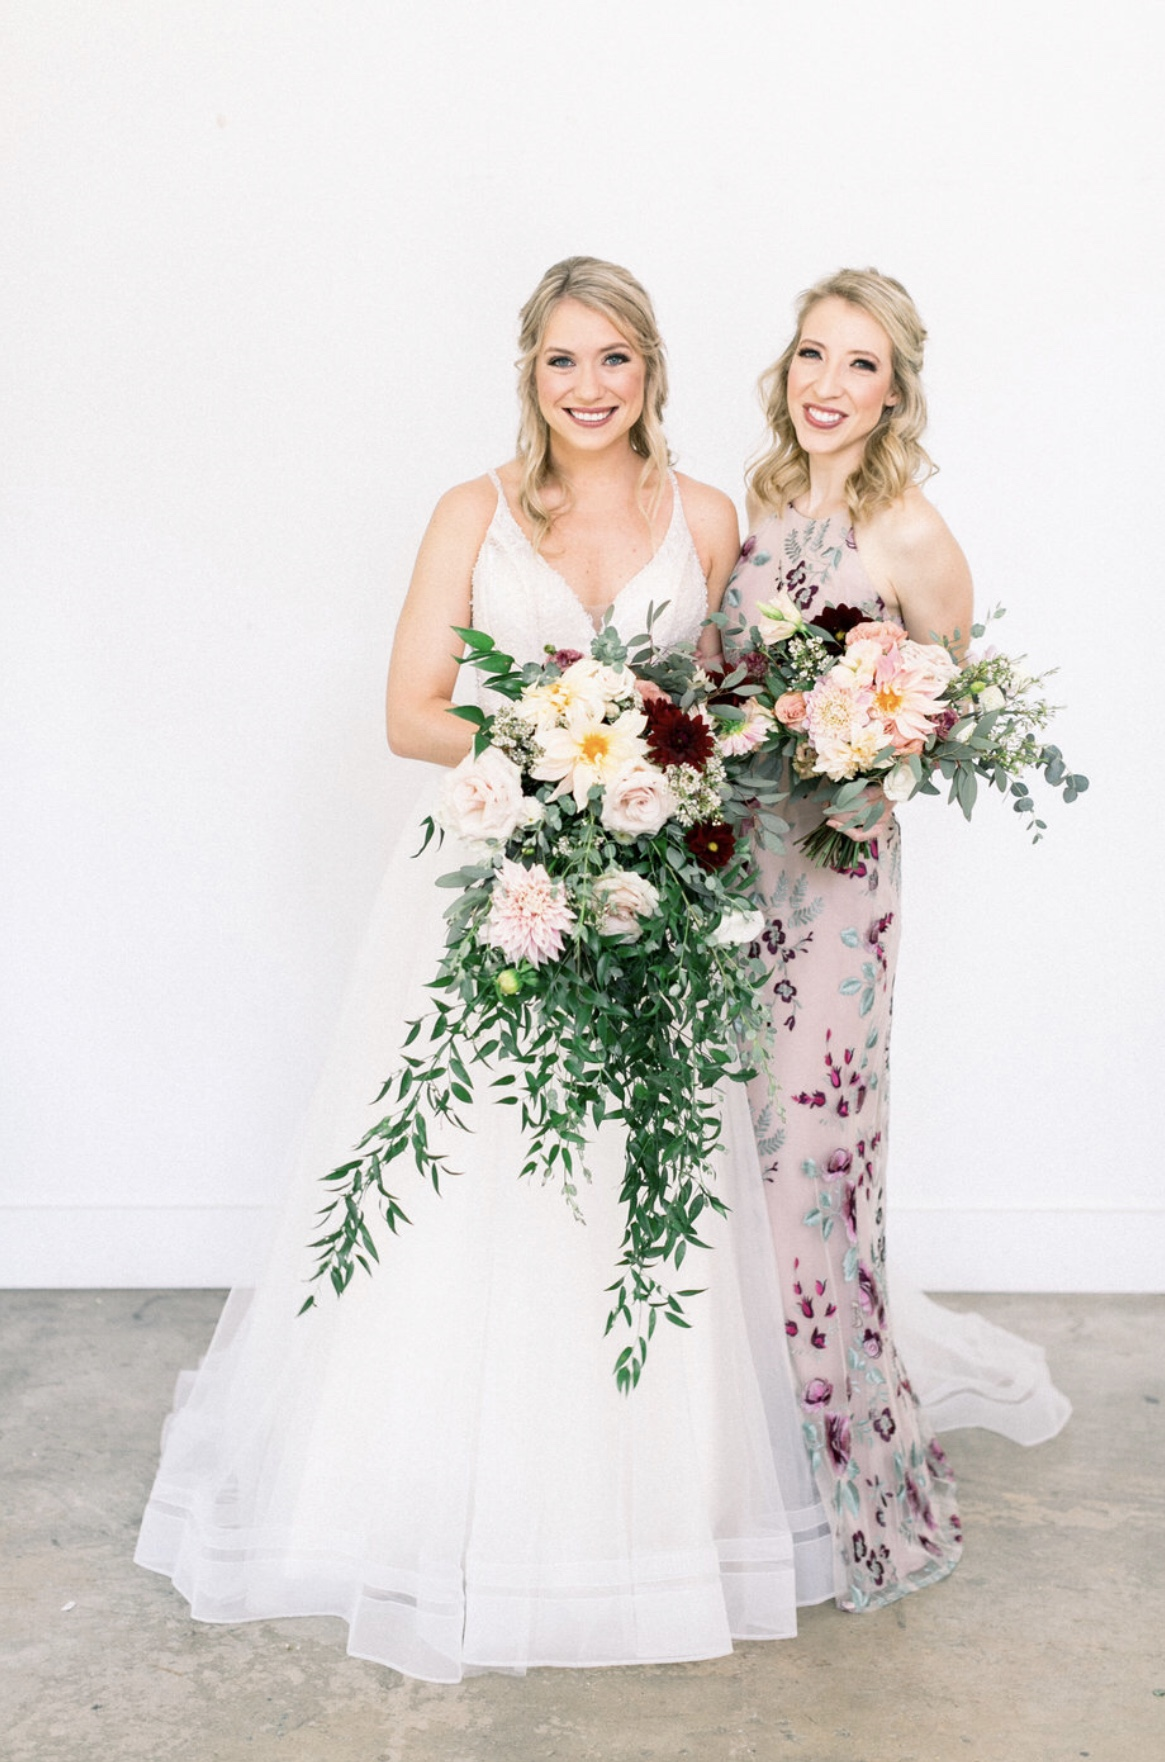 Photo by  Amber Hatley Photography  at  Engaged Asheville ; Makeup by Jessica